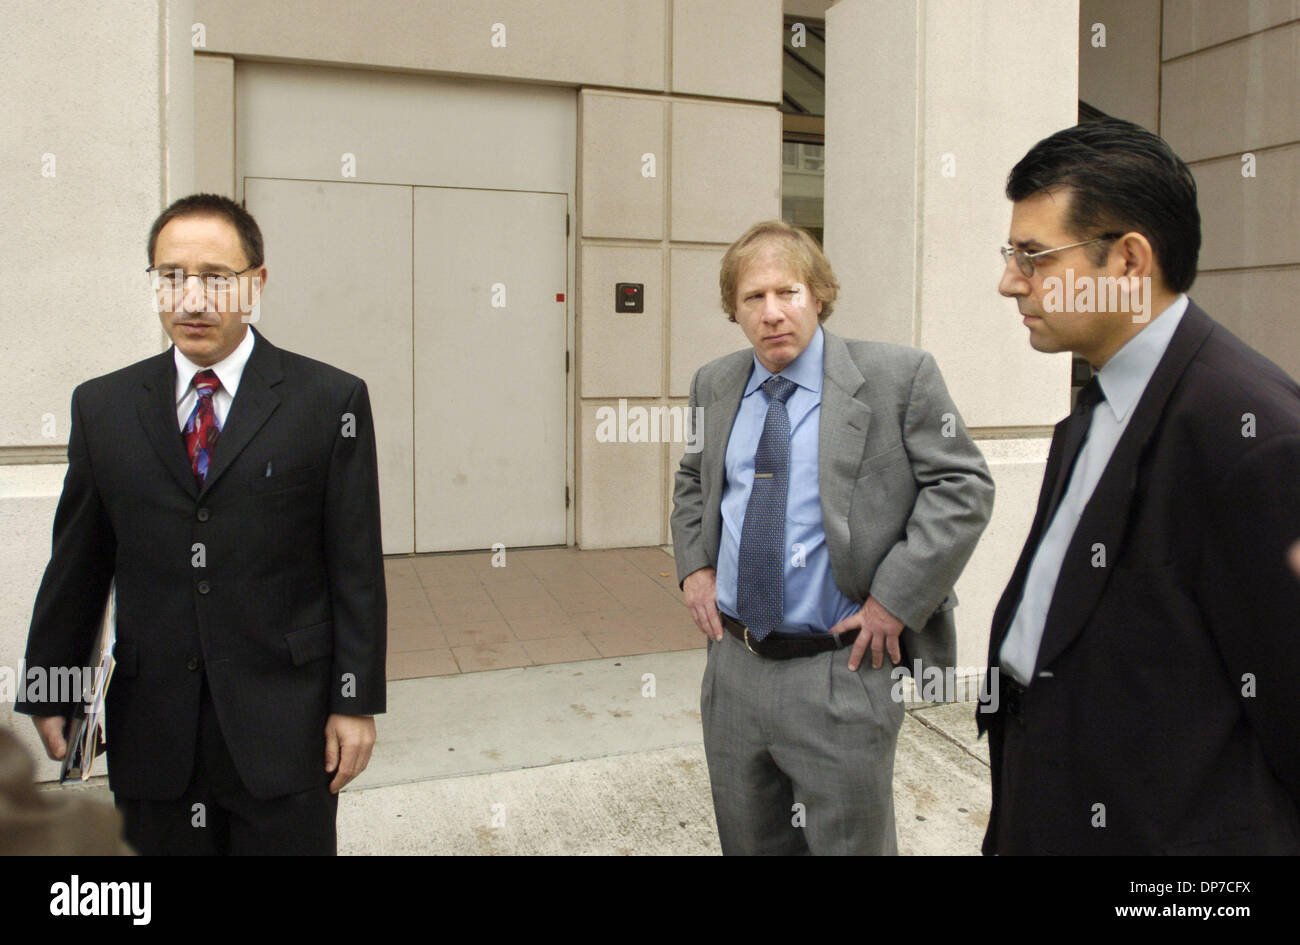 Nov 22, 2006; Martinez, CA, USA; At left, Attorney Daniel Horowitz talks about his client, Andrew Mantas, 16, not shown, outside of court in Martinez, Calif. on Wednesday  November 22, 2006.   At right is Andrew Mantas' father, Peter Mantas and, at center, is co-counsel, Ivan Golde.  The judge had a court hearing to decide if Andrew Mantas is psychologically competent to stand tria - Stock Image